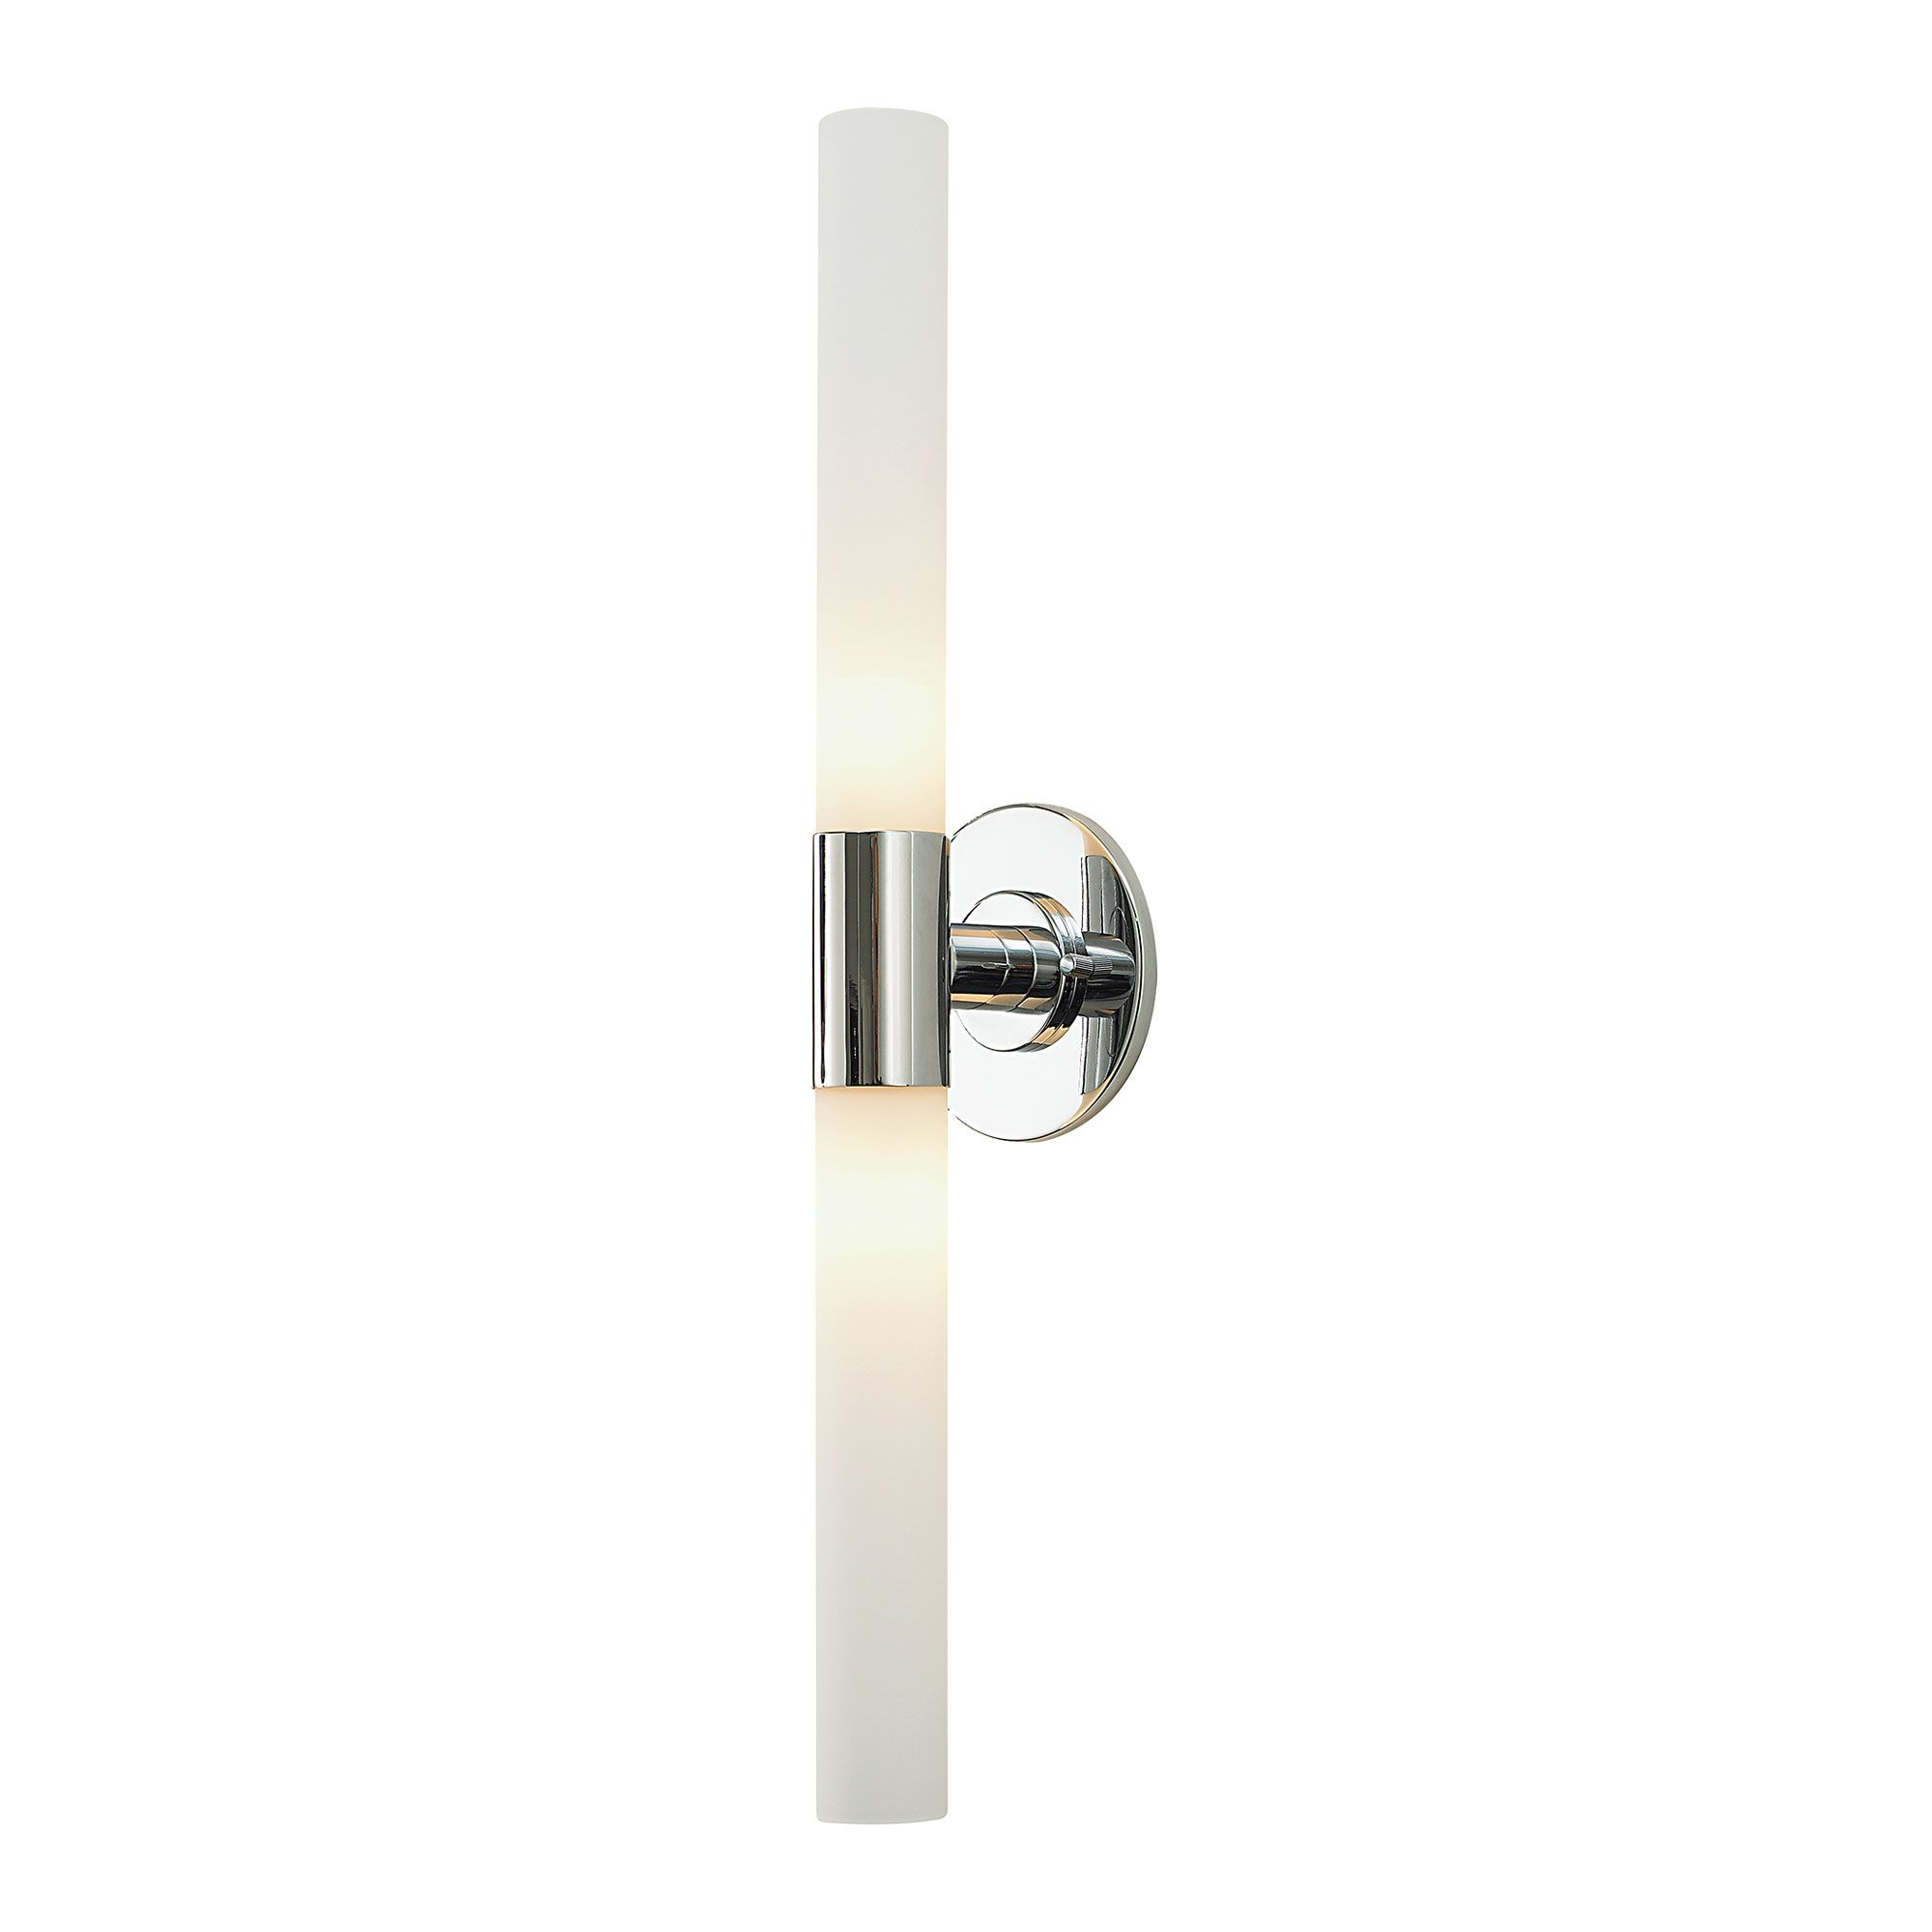 Long Double Cylinder Bath Vanity Light by Alico Industries $190. Matt satin nickel  sc 1 st  Pinterest & Long Double Cylinder Bath Vanity Light by Alico Industries $190 ... azcodes.com